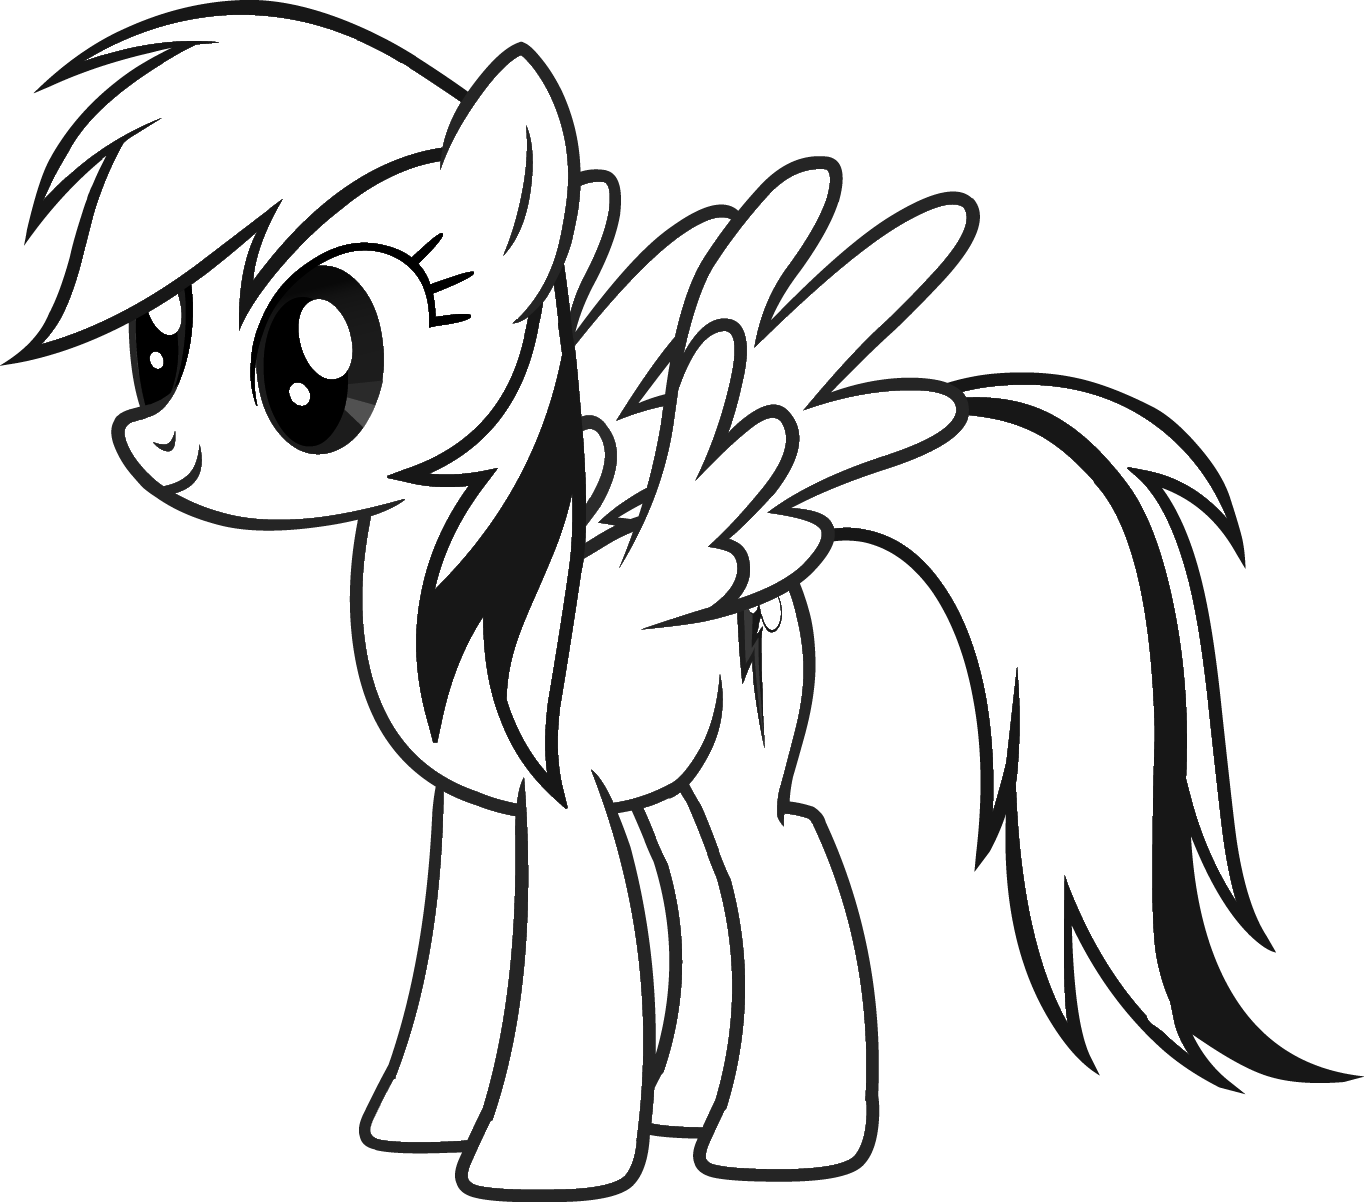 my little pony friendship is magic colouring pictures to print my little pony friendship is magic coloring pages lets pictures print pony little to friendship my is magic colouring